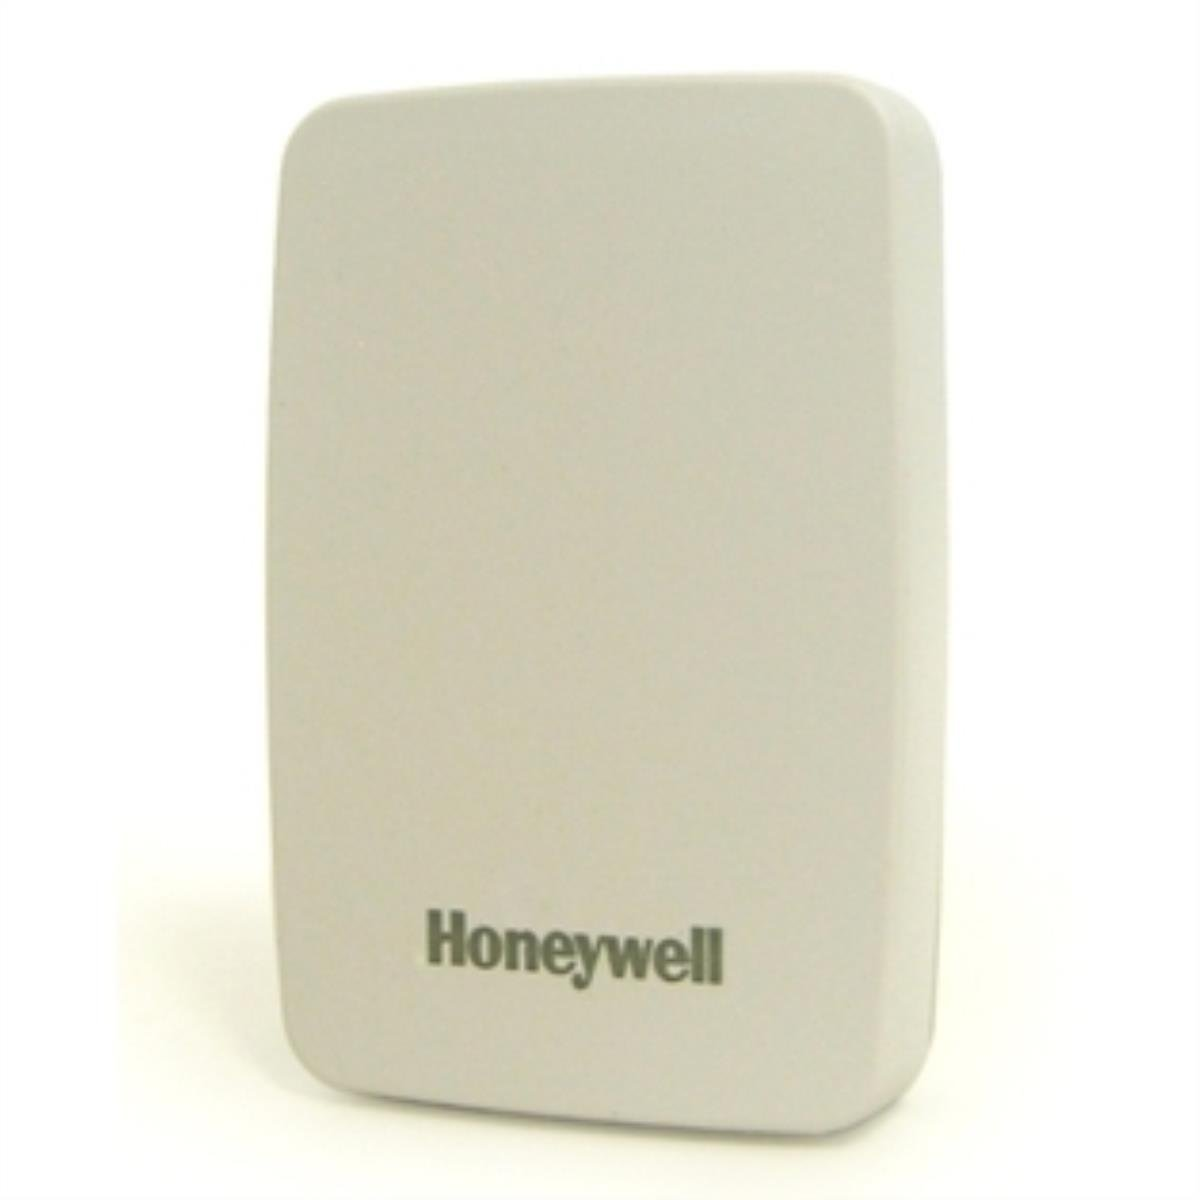 Honeywell C7189u1005 White Indoor Remote Temperature Sensor For Mm 2 58t Wiring Diagram Thermostat Th7000 And Th8000 Thermostats Pcs